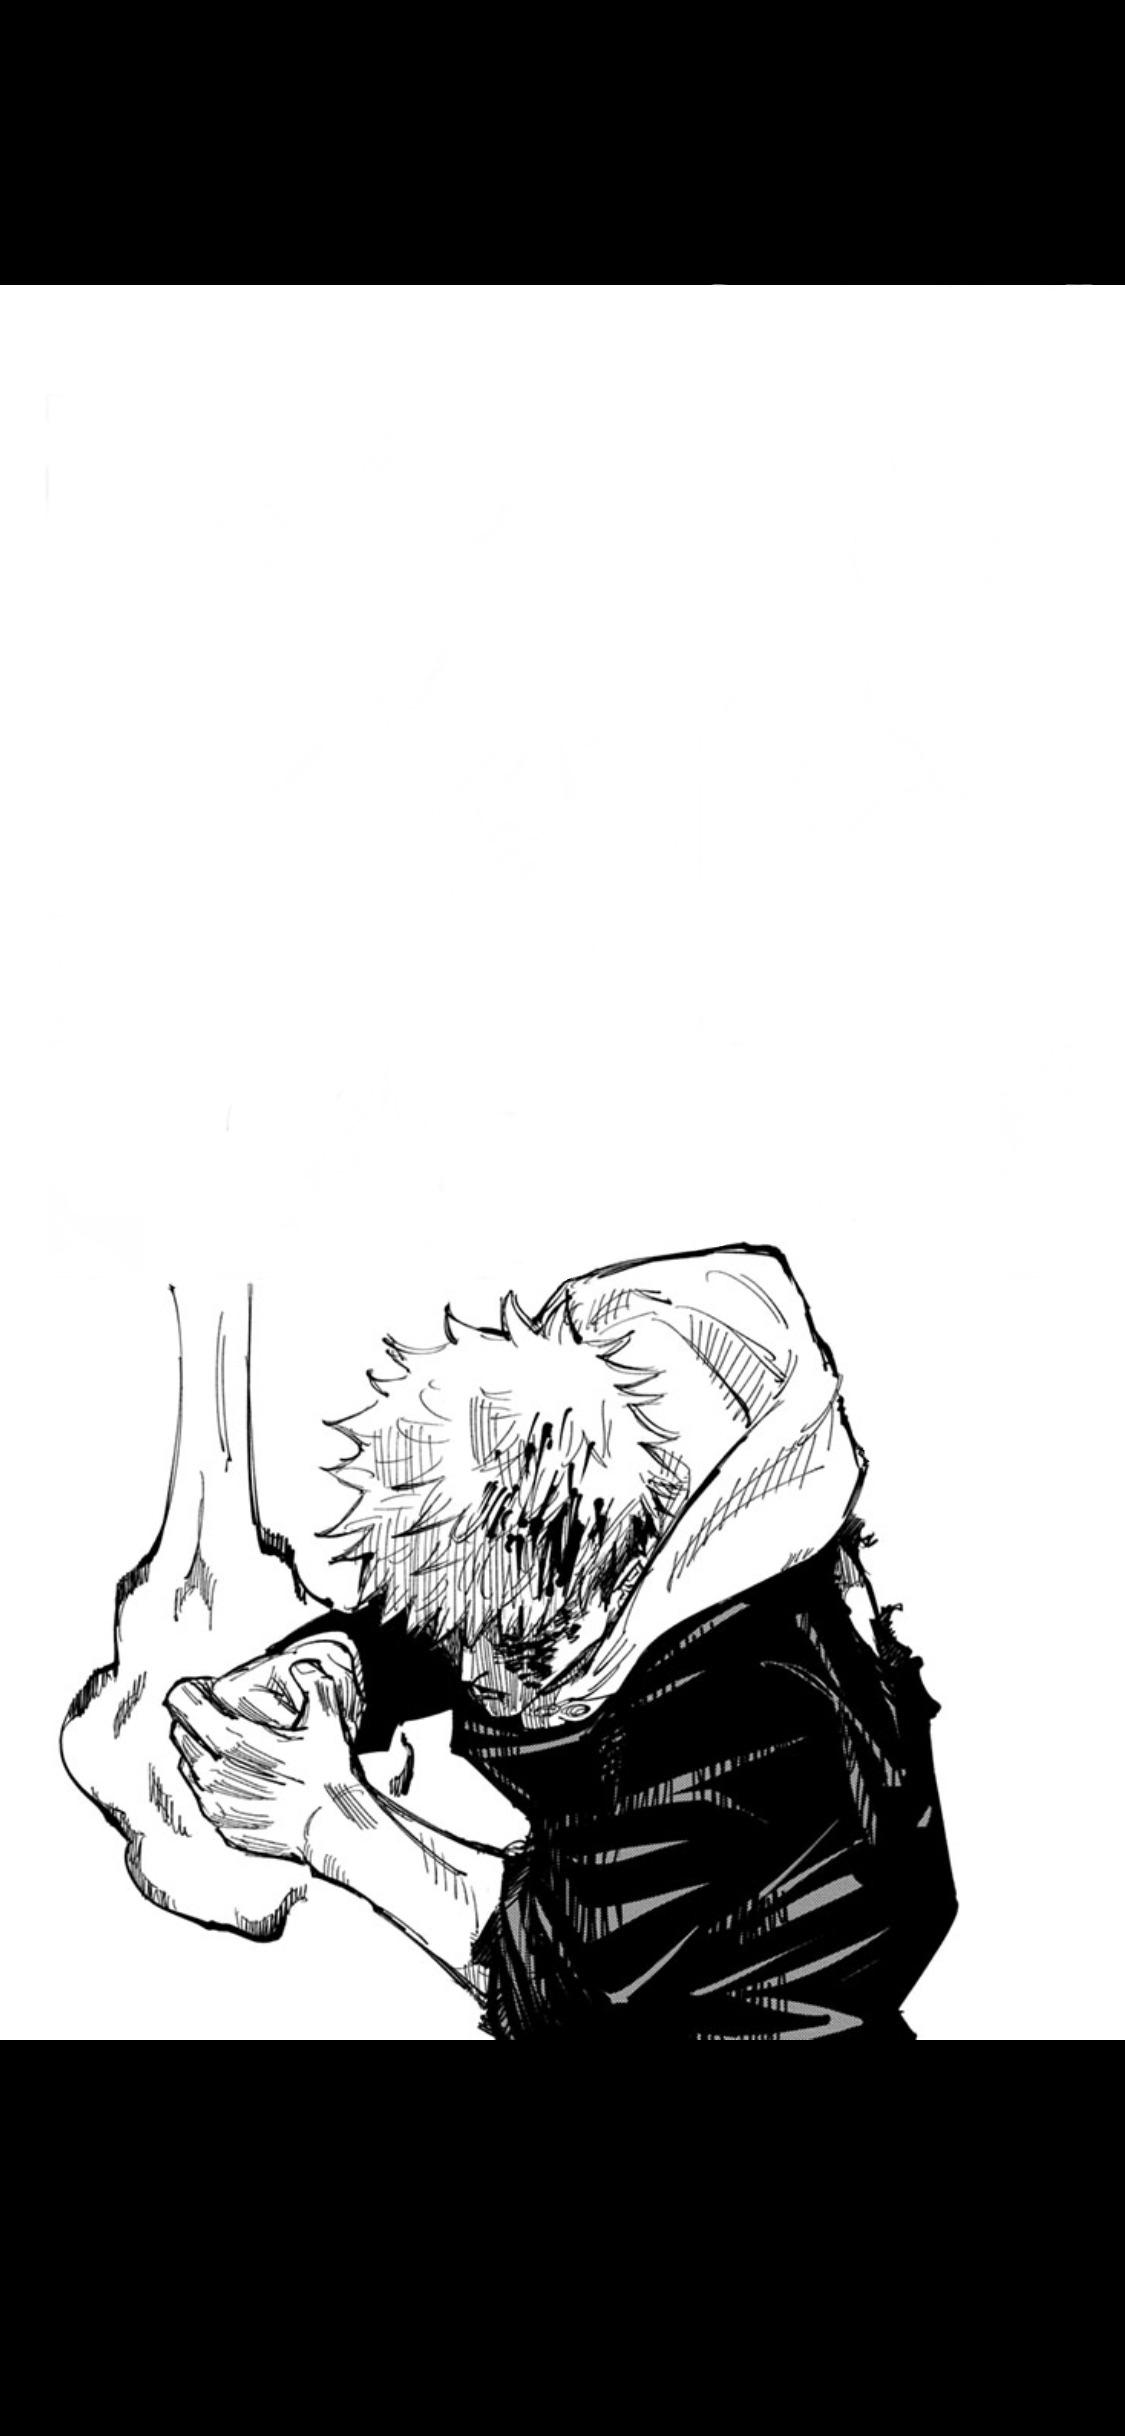 Now I made it into a wallpaper, feel free to use : JuJutsuKaisen